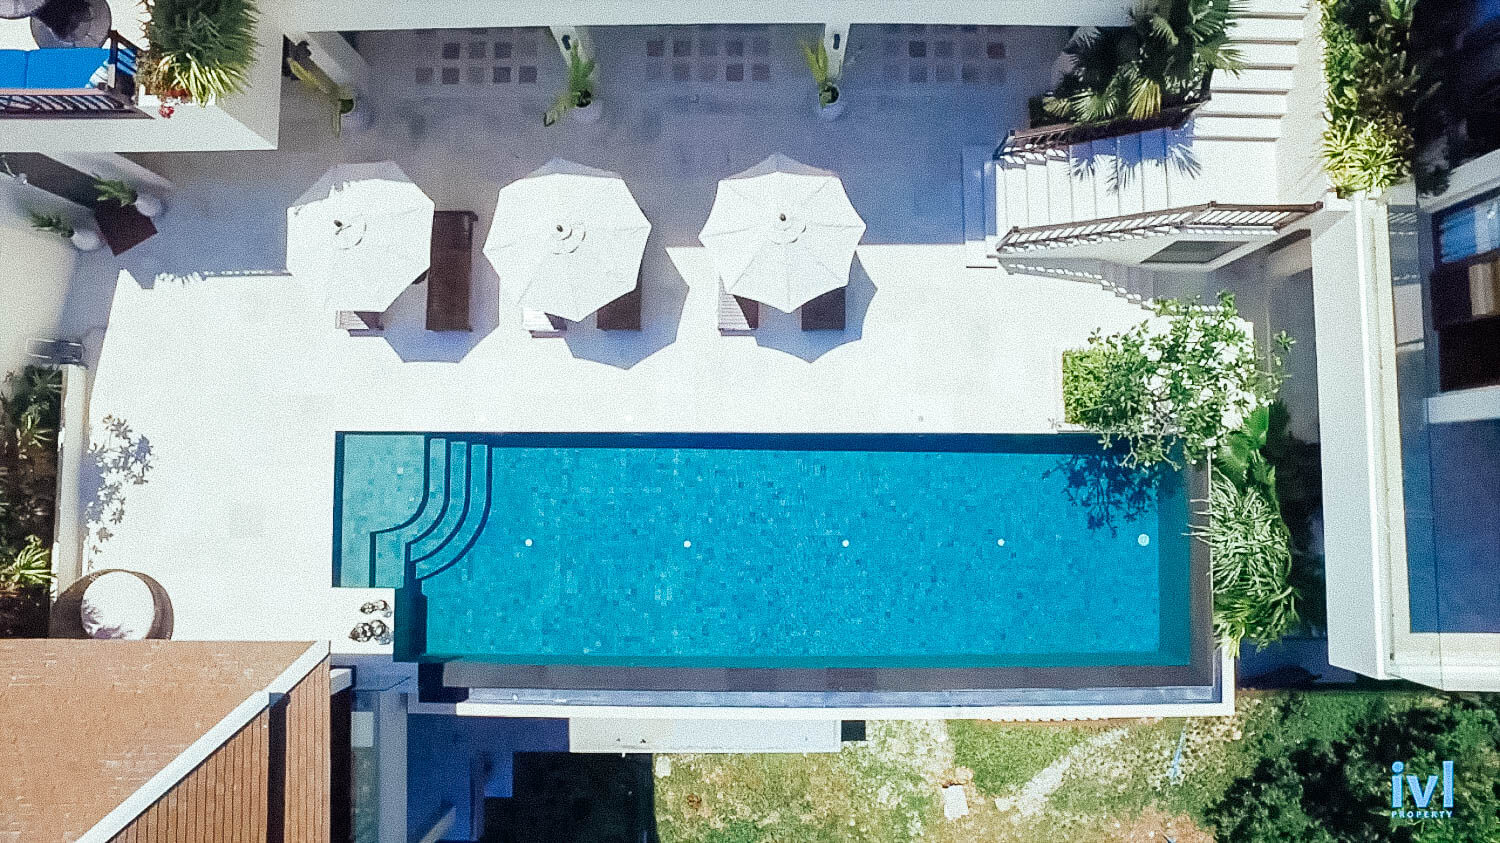 How to rent a villa in Thailand? Our FAQs explain our no-smoking policy, our infinity-edge pool and give more detail about walking to the beach.